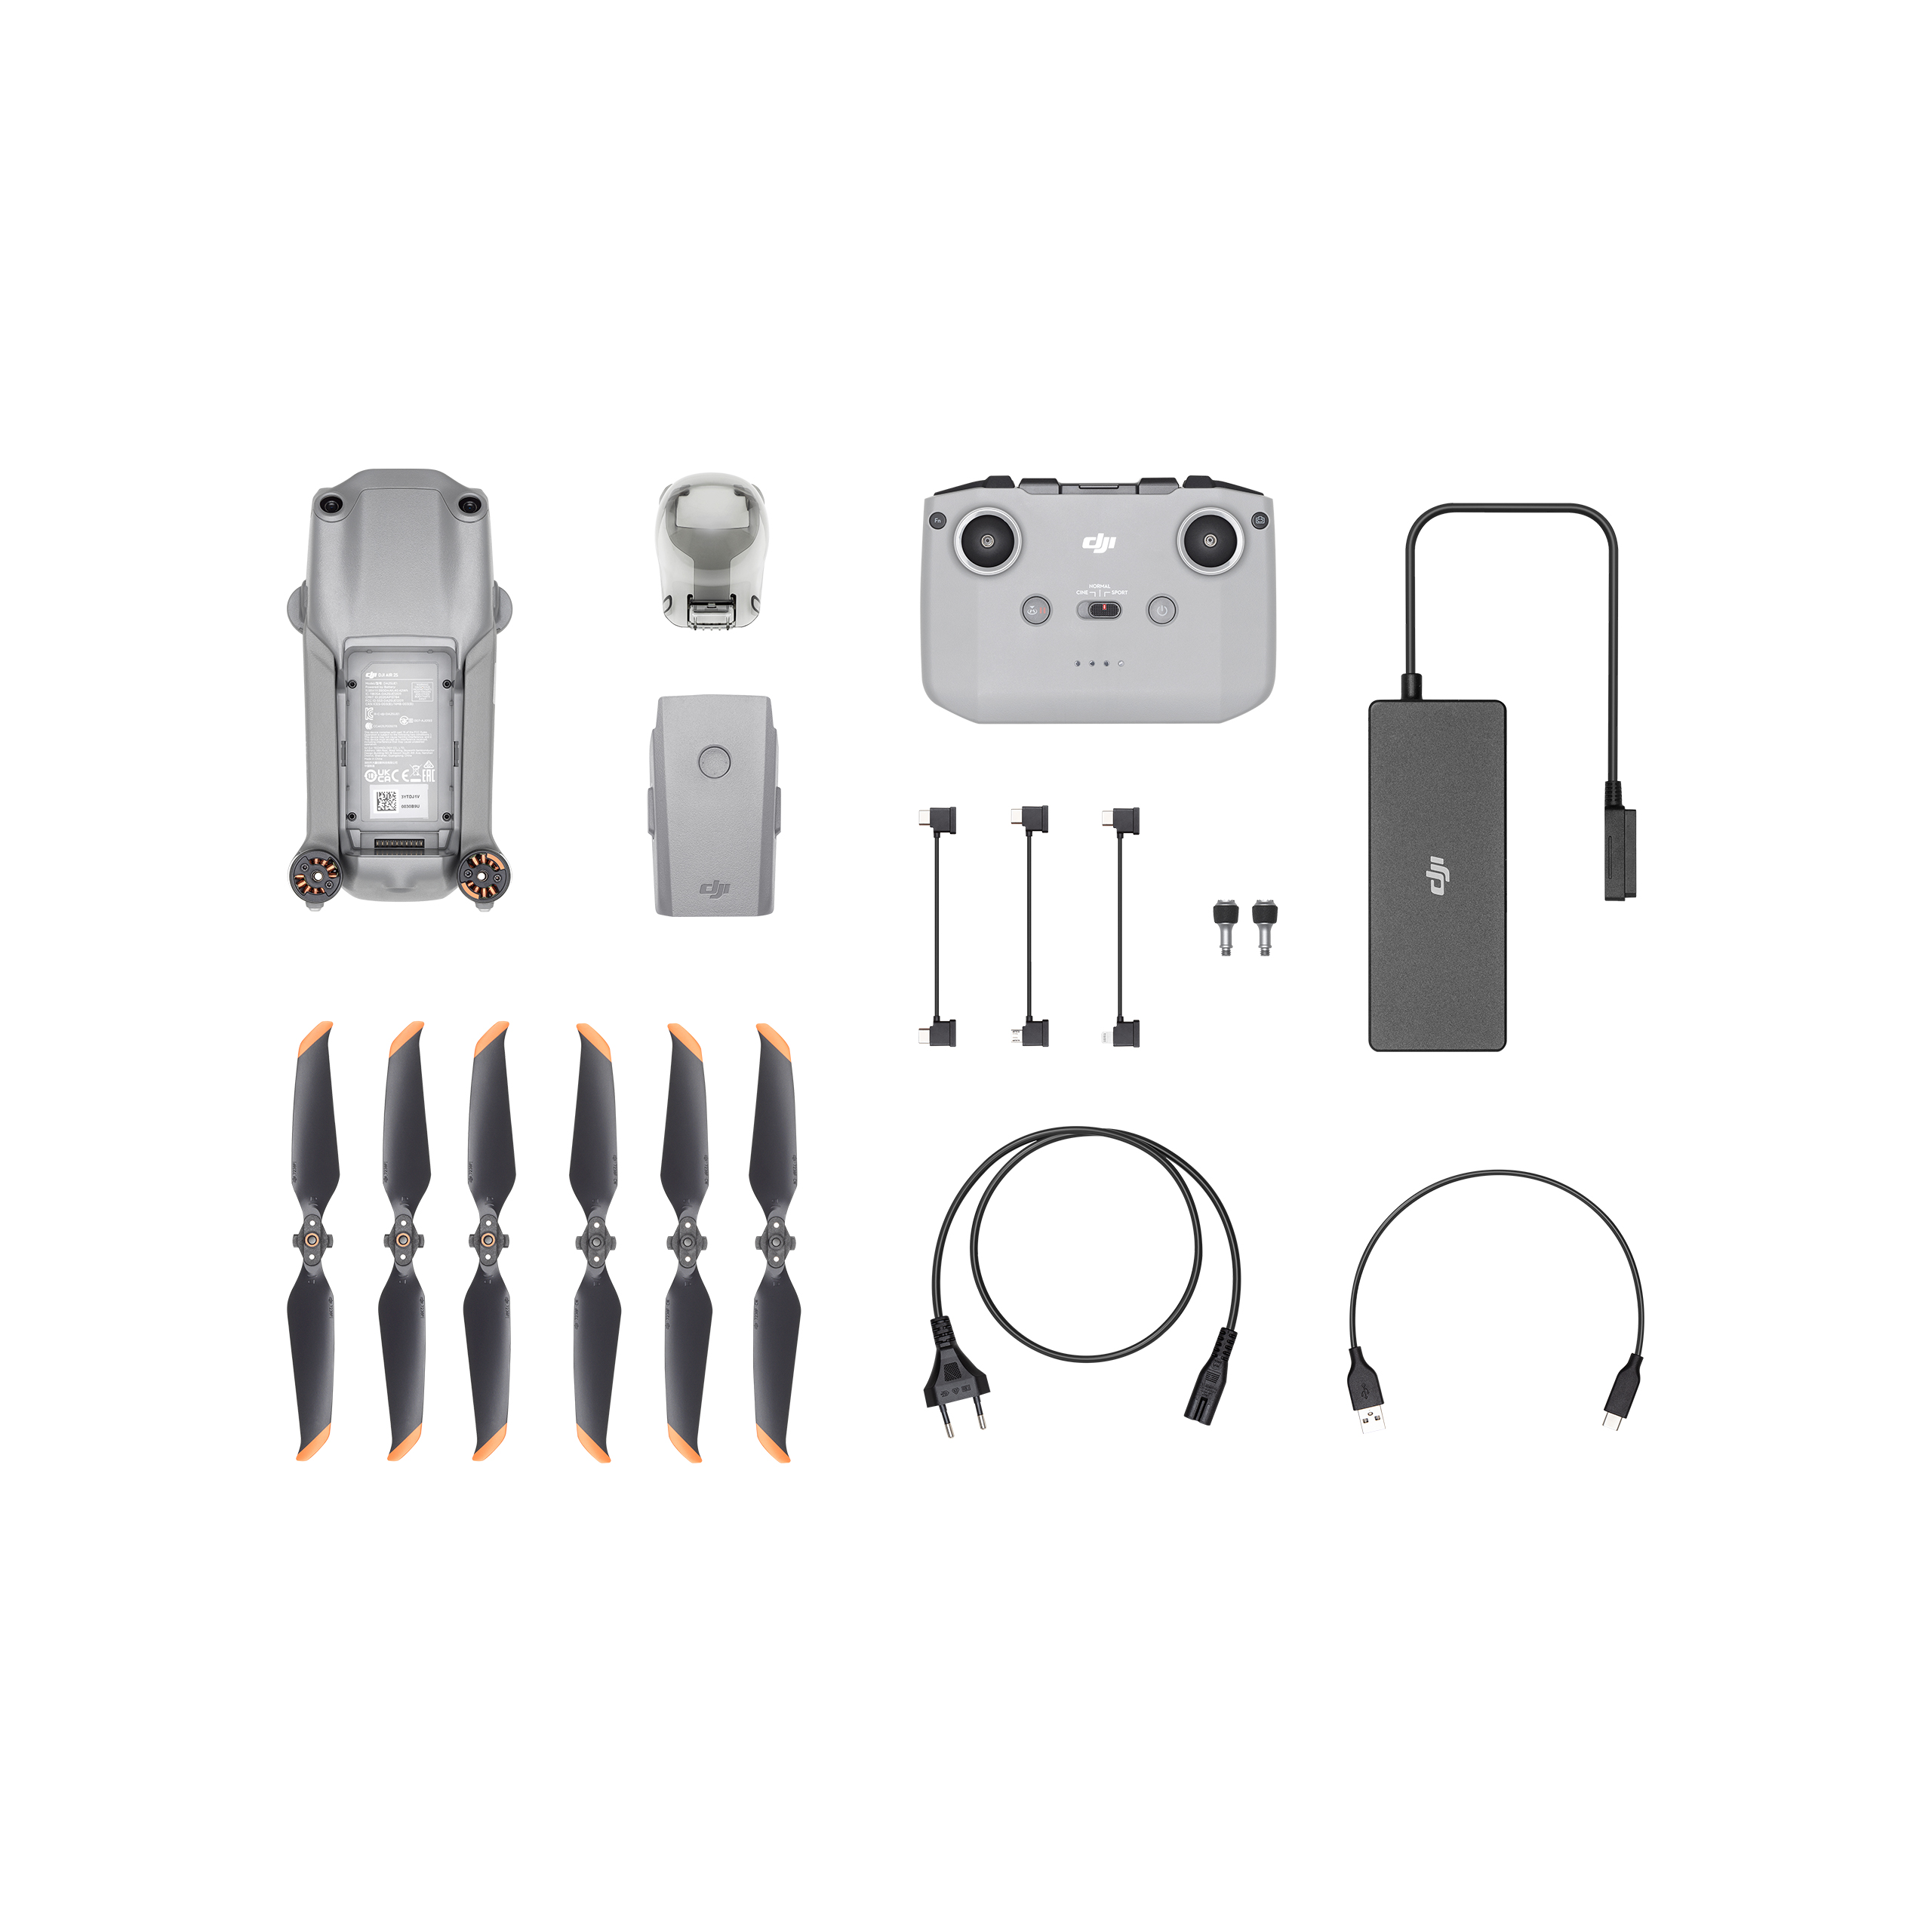 DJi Mavic Air 2 illustrating accessoires including battery, controller, power bank and propellers